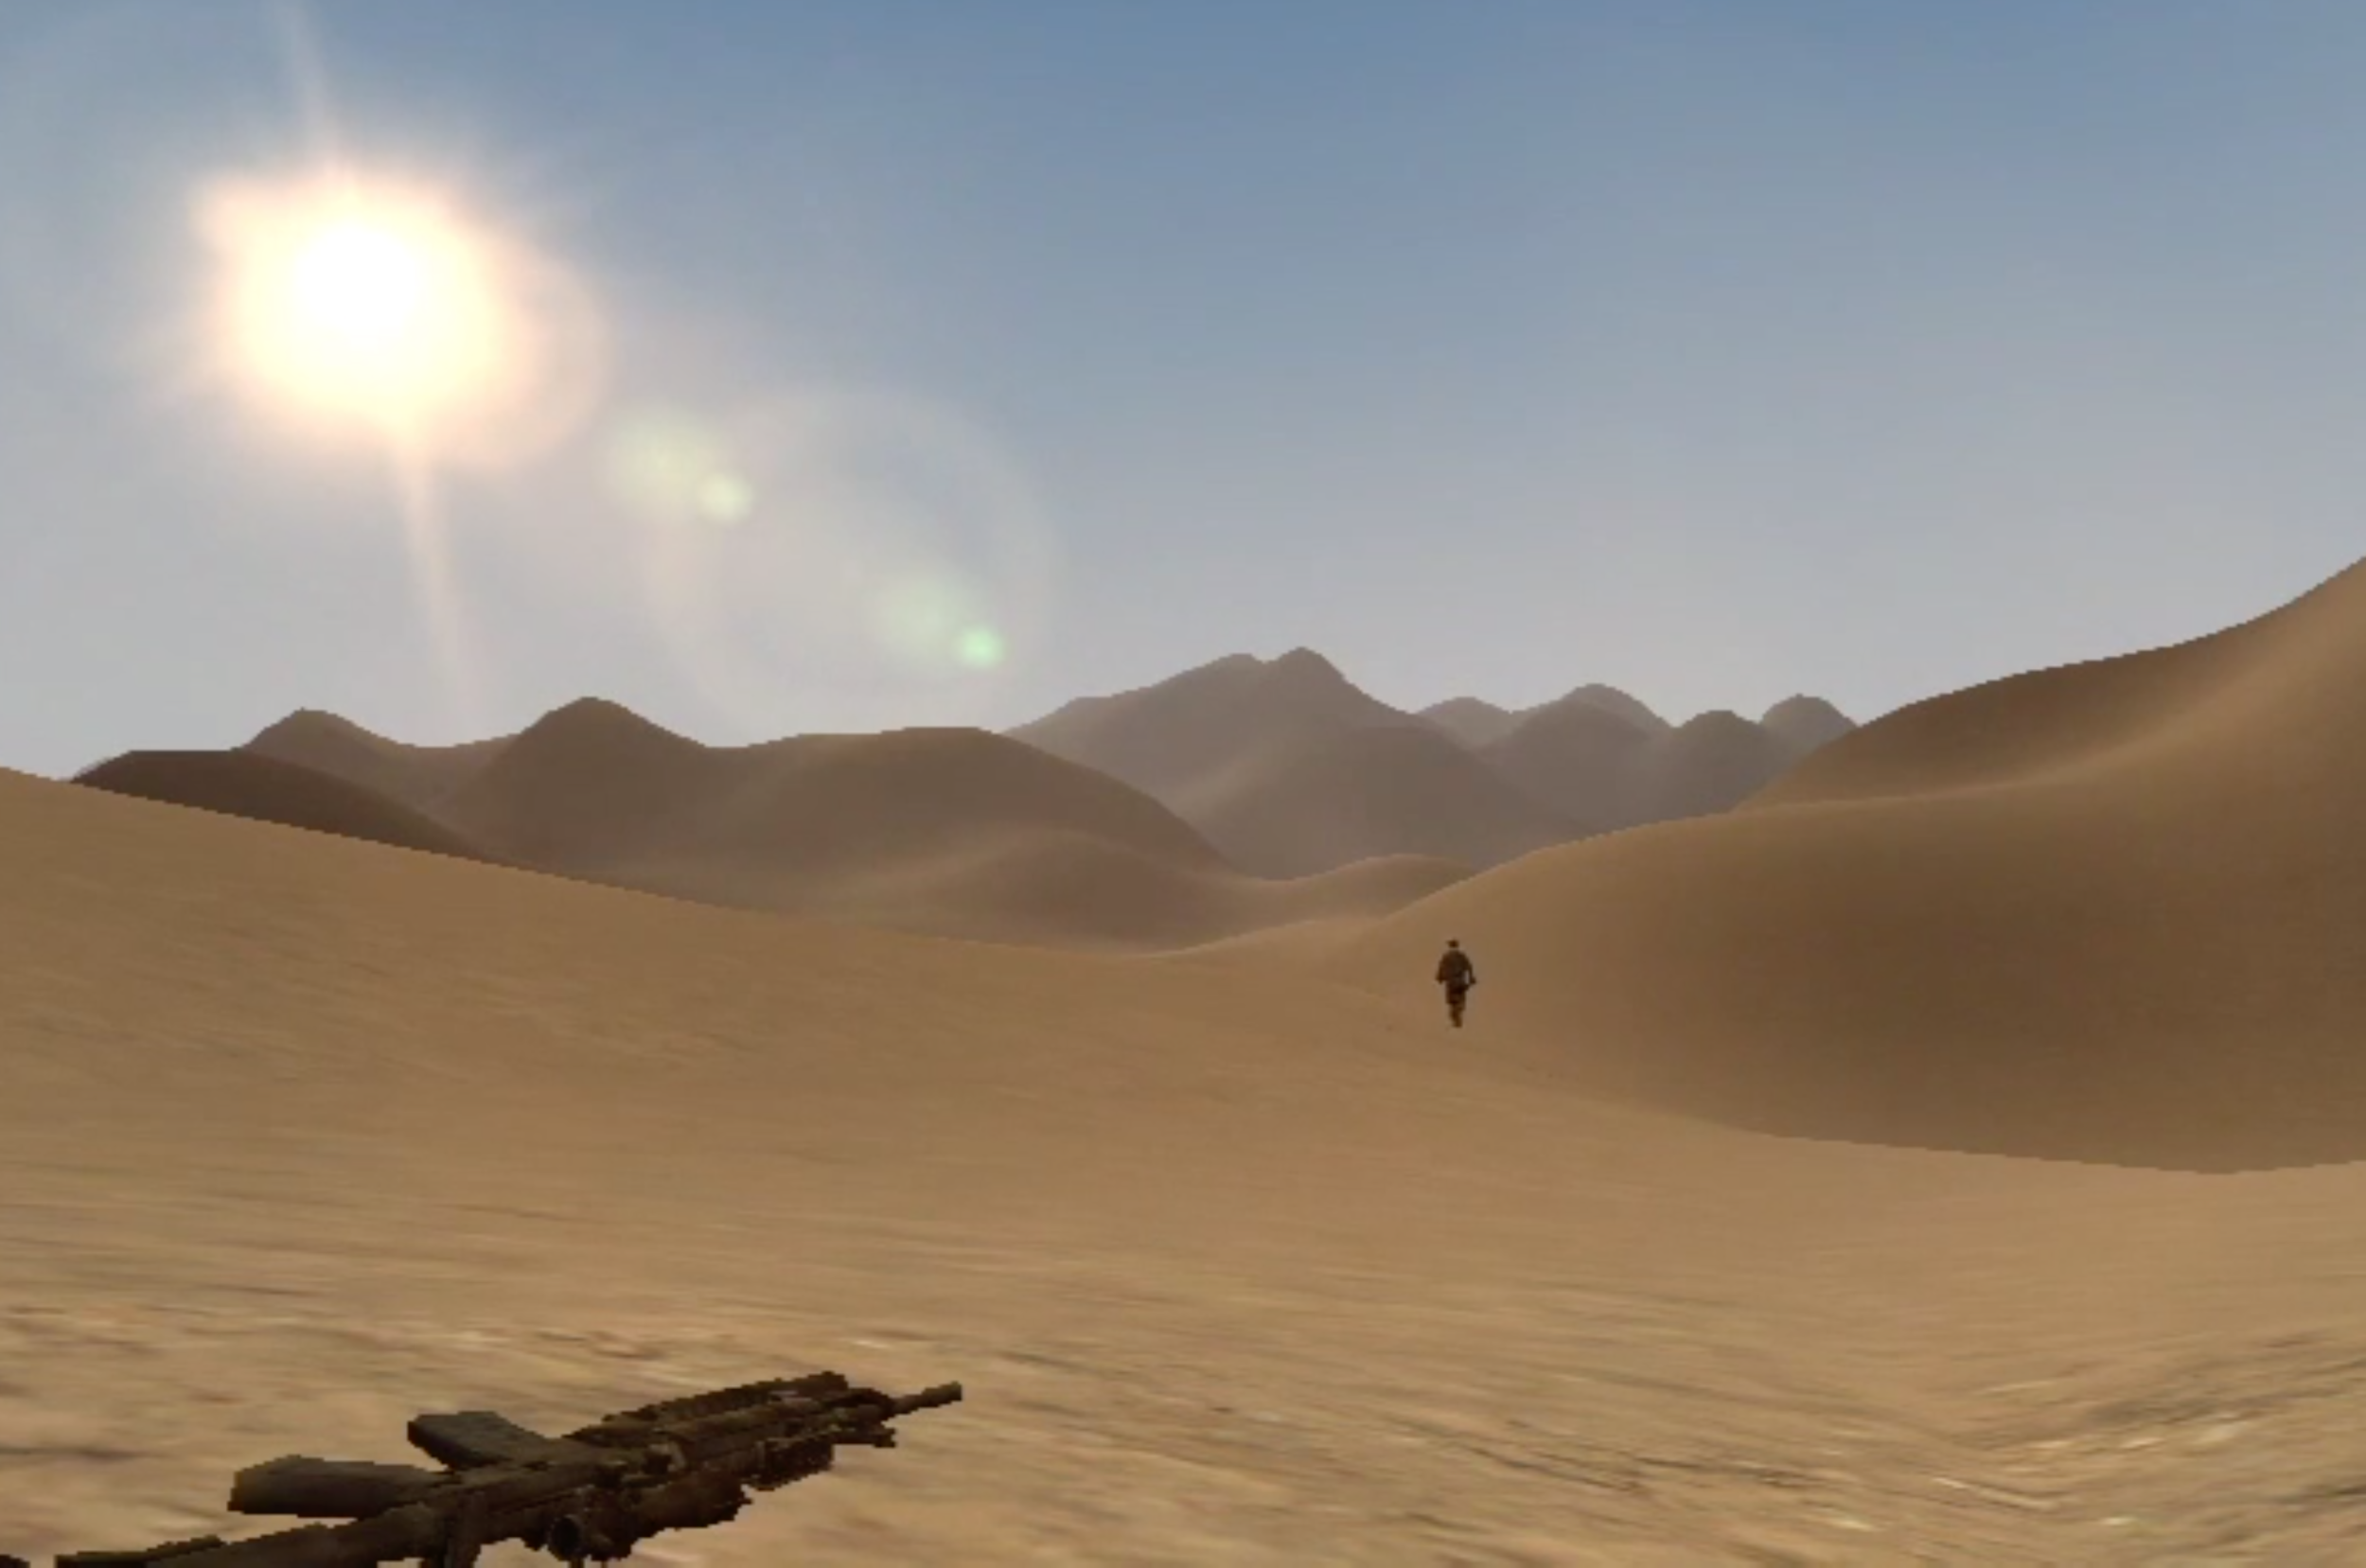 Welcome to the Desert of the Real  (Paolo Pedercini, 2009)